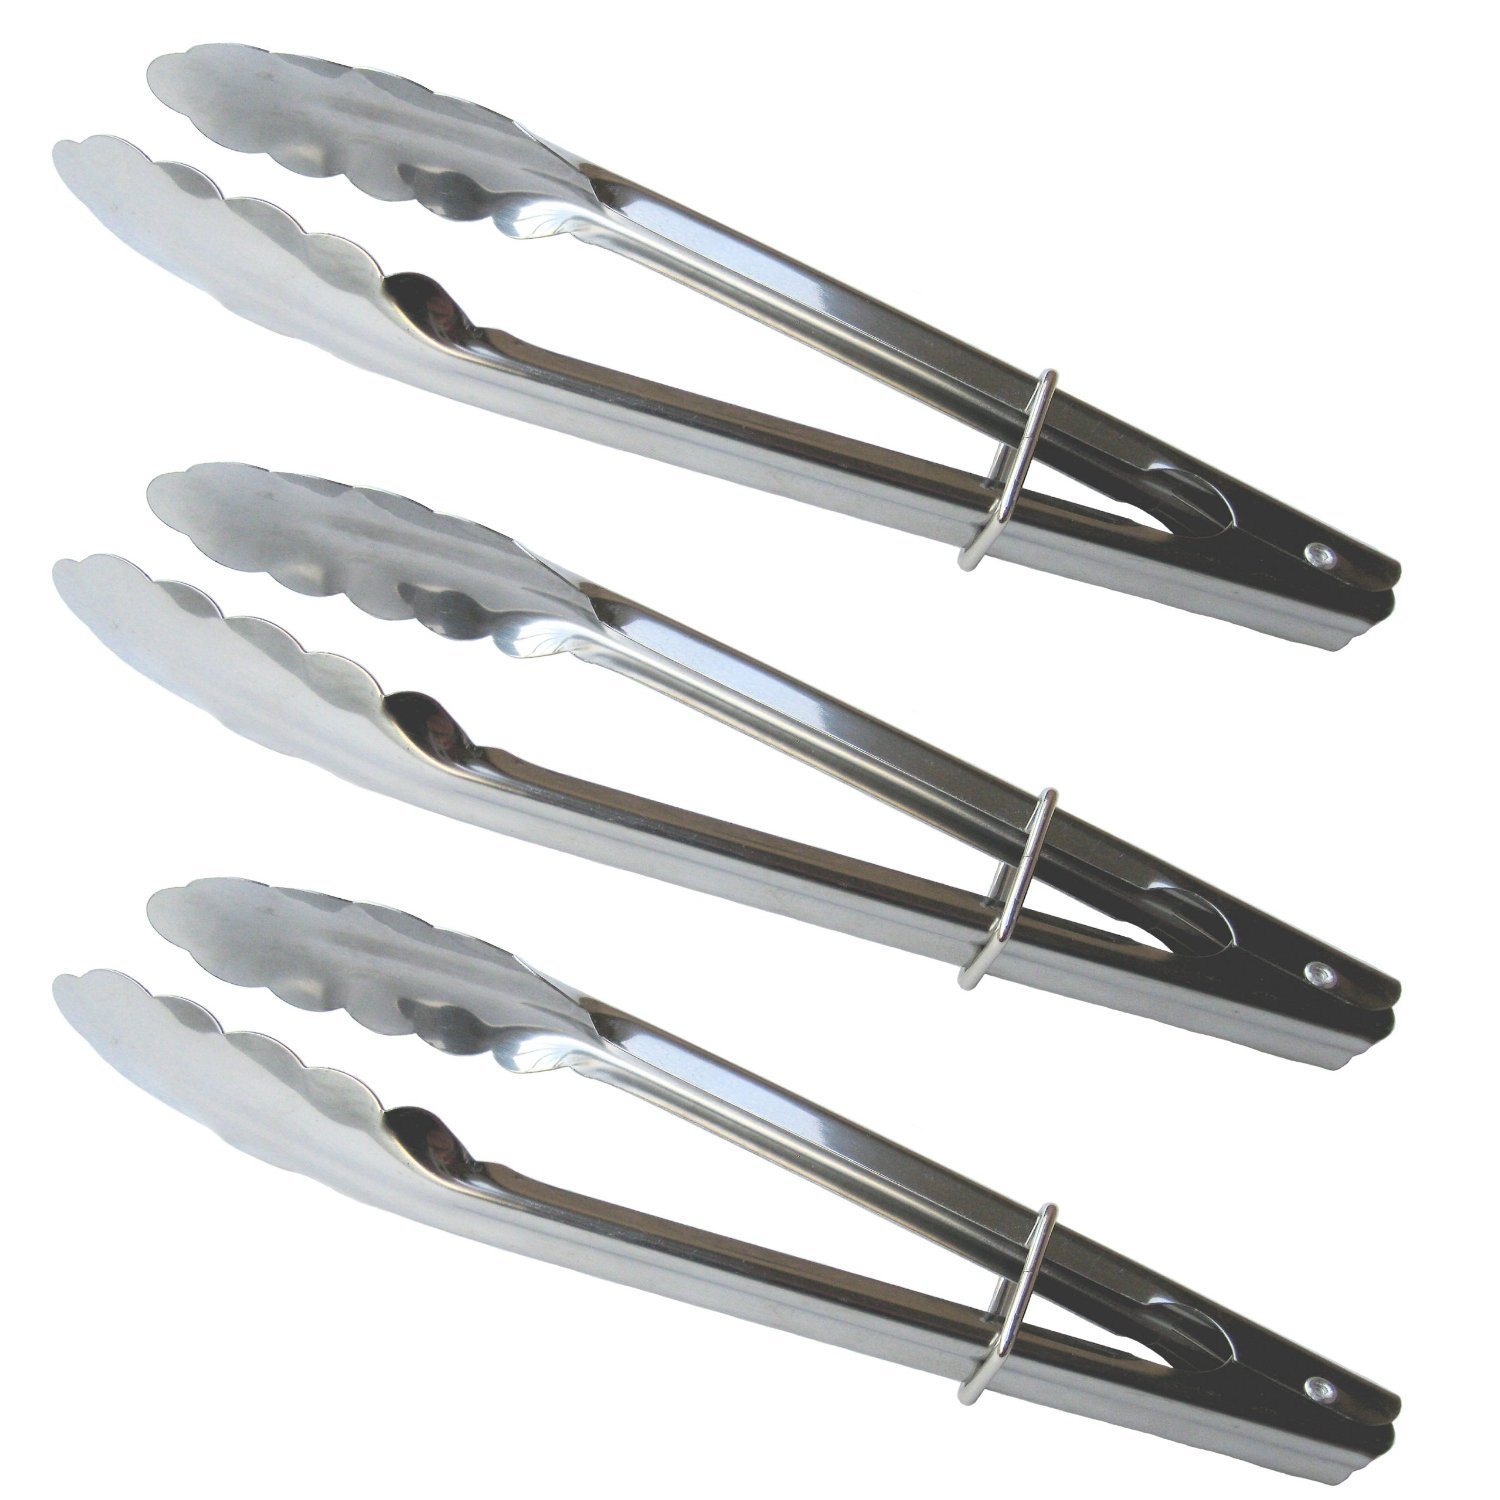 Tongs 3-pack